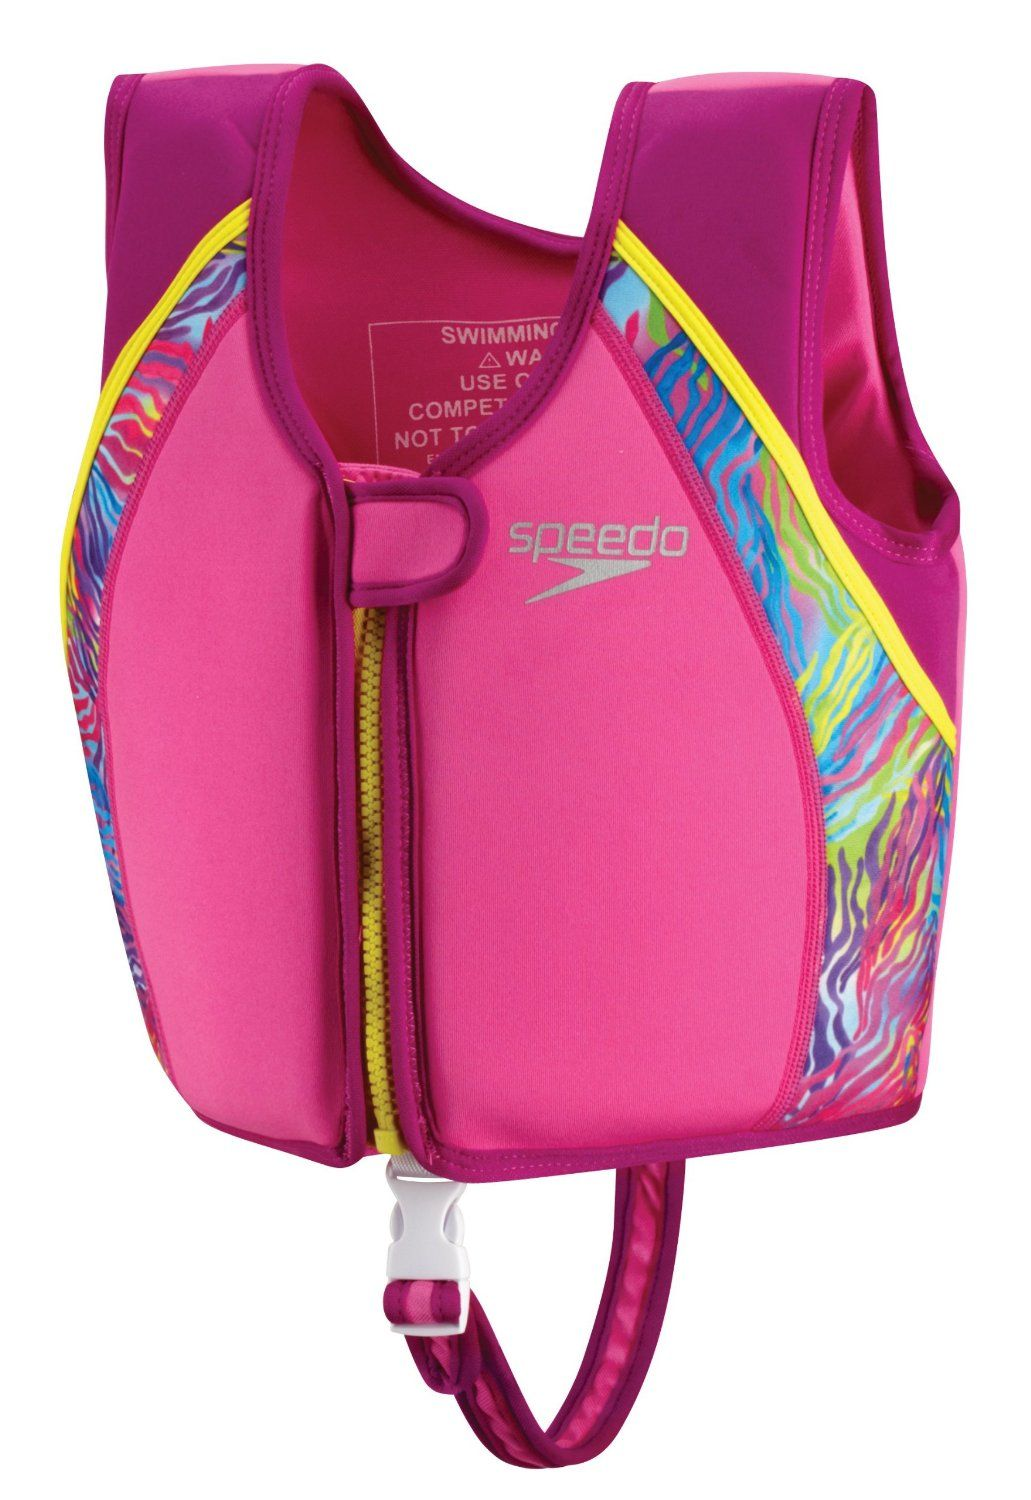 Speedo Begin To Swim Uv Printed Neoprene Swim Vest Swim Accessories Swimming Neoprene